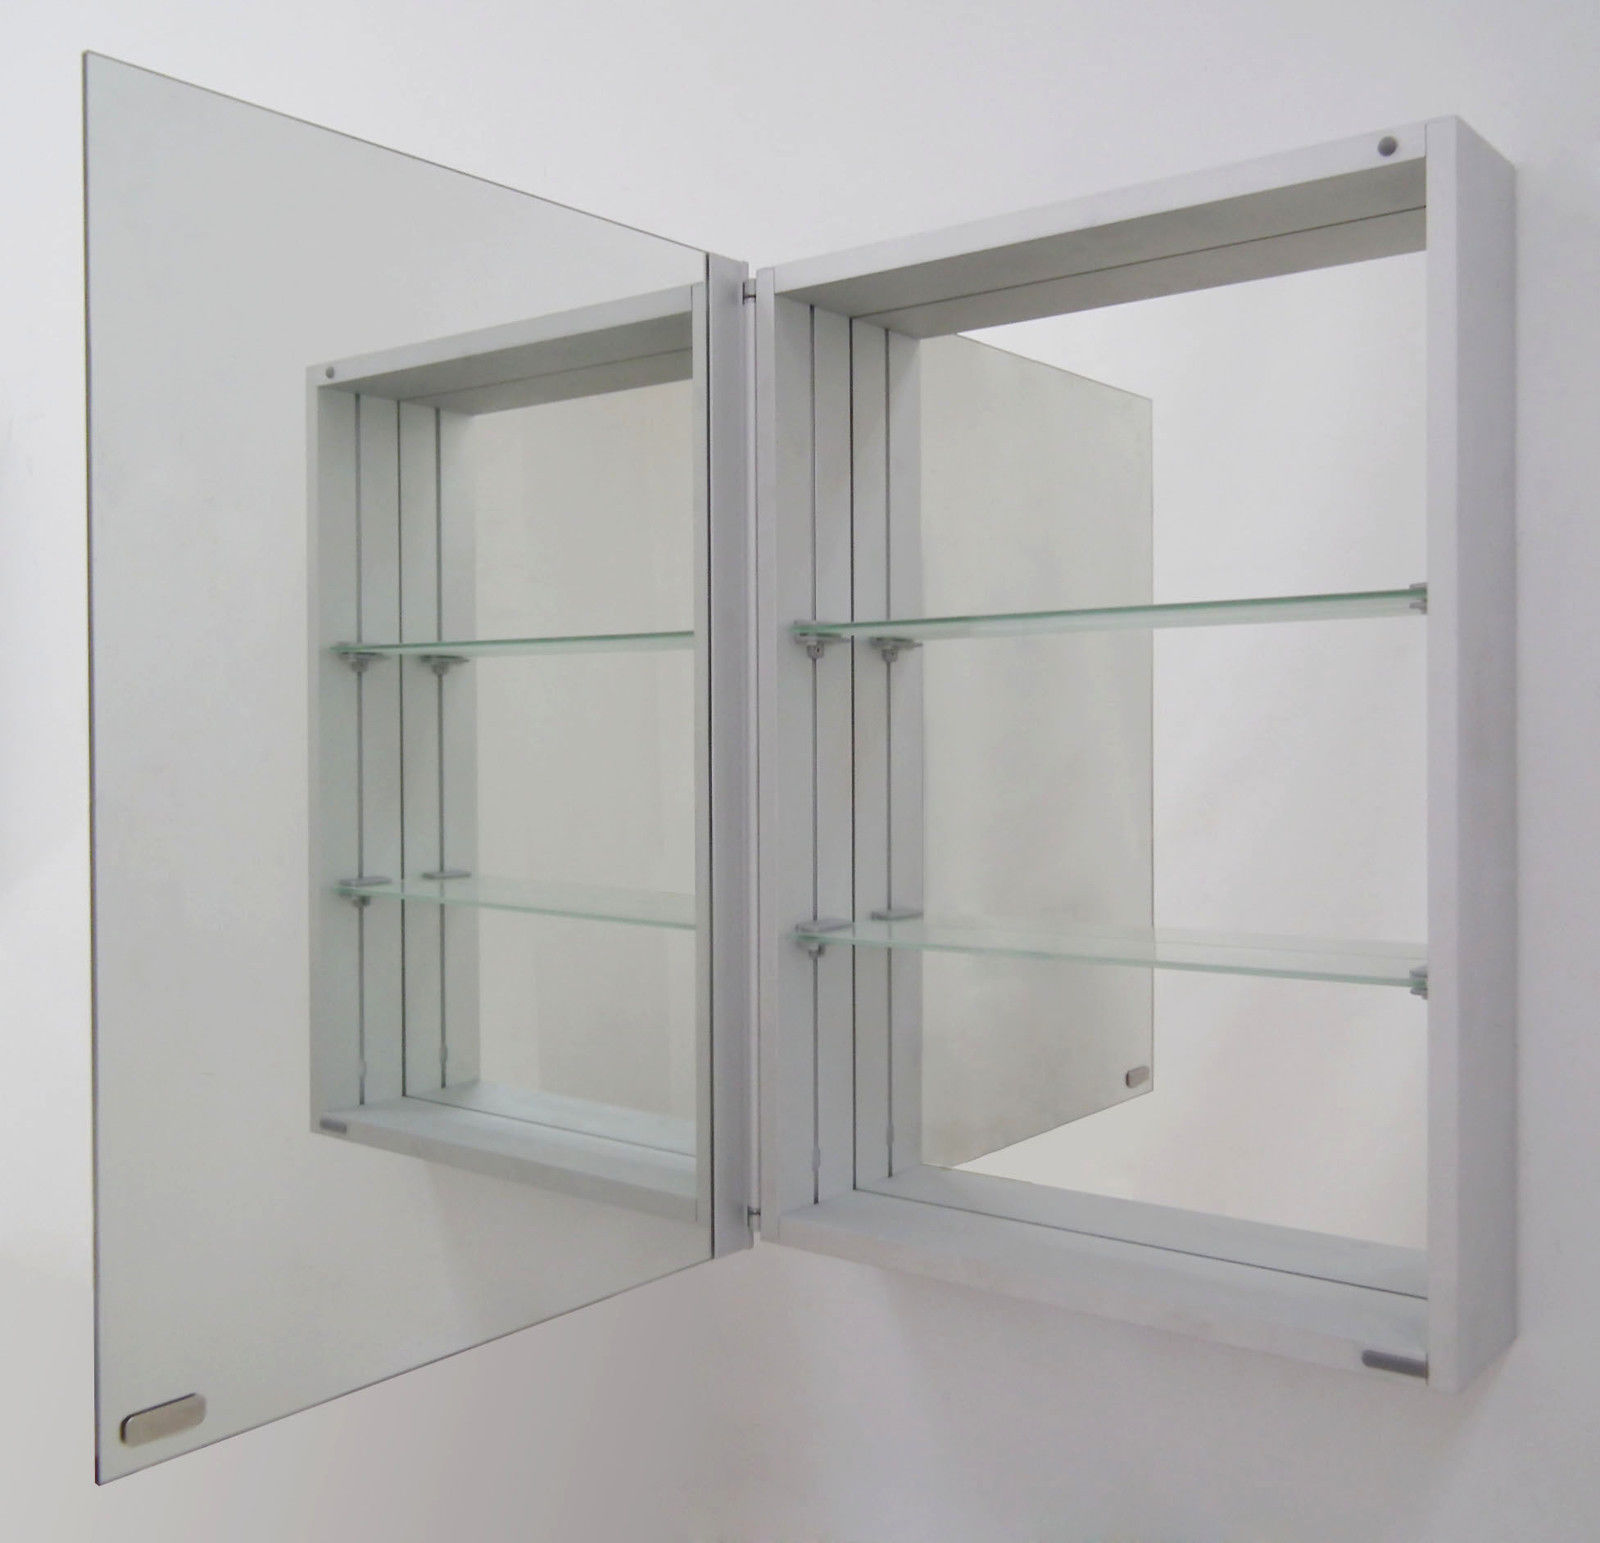 Elegant slim aluminium bathroom mirror cabinet 70x50 with for Slim mirrored bathroom cabinet